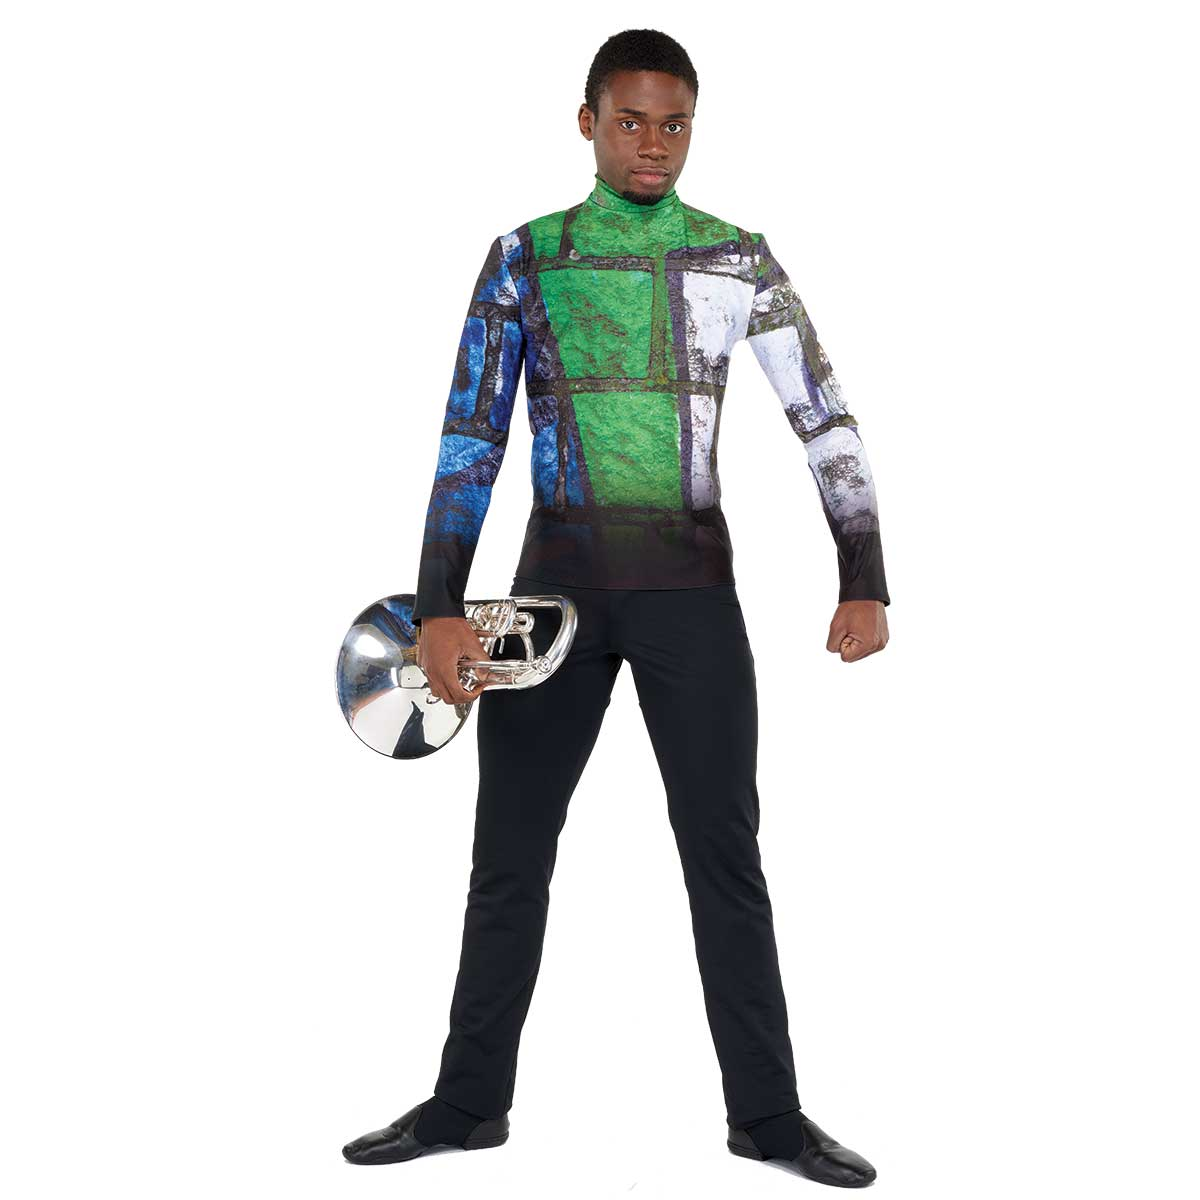 Digital Band Uniforms: Style 1911 Jacket